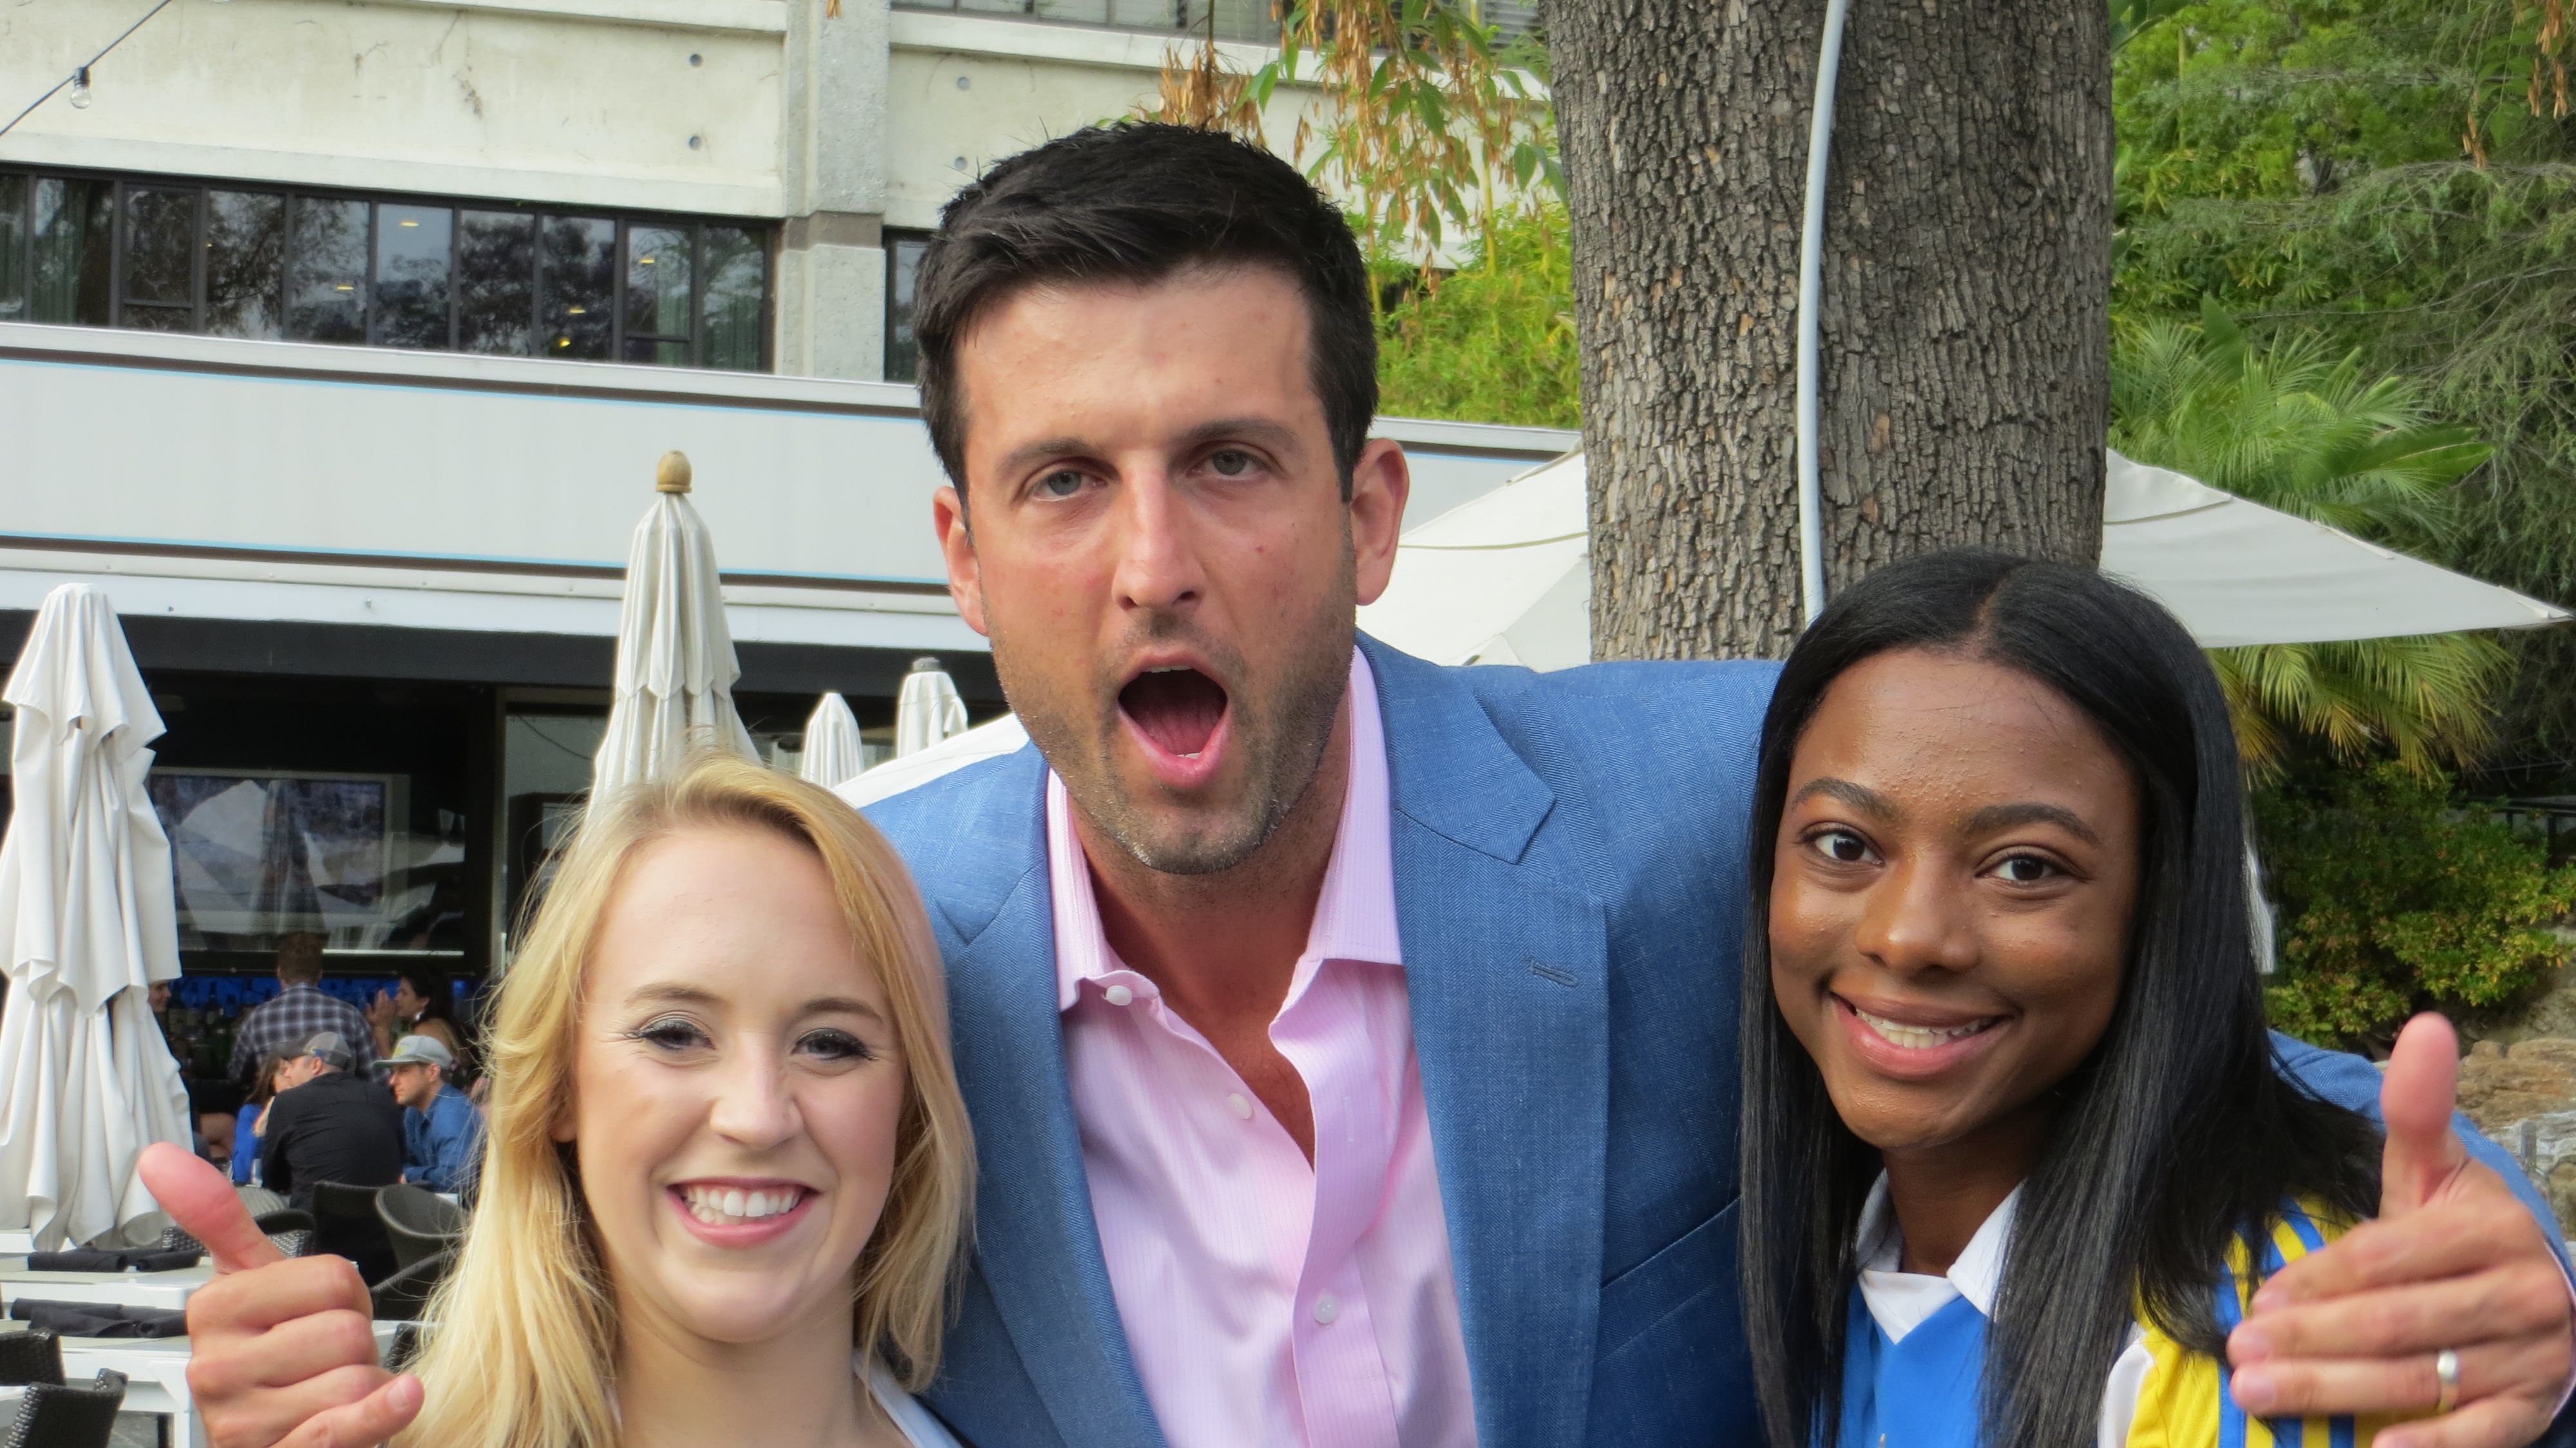 Jason Kapono poses for a goofy picture the Count On Me Foundation's reception.